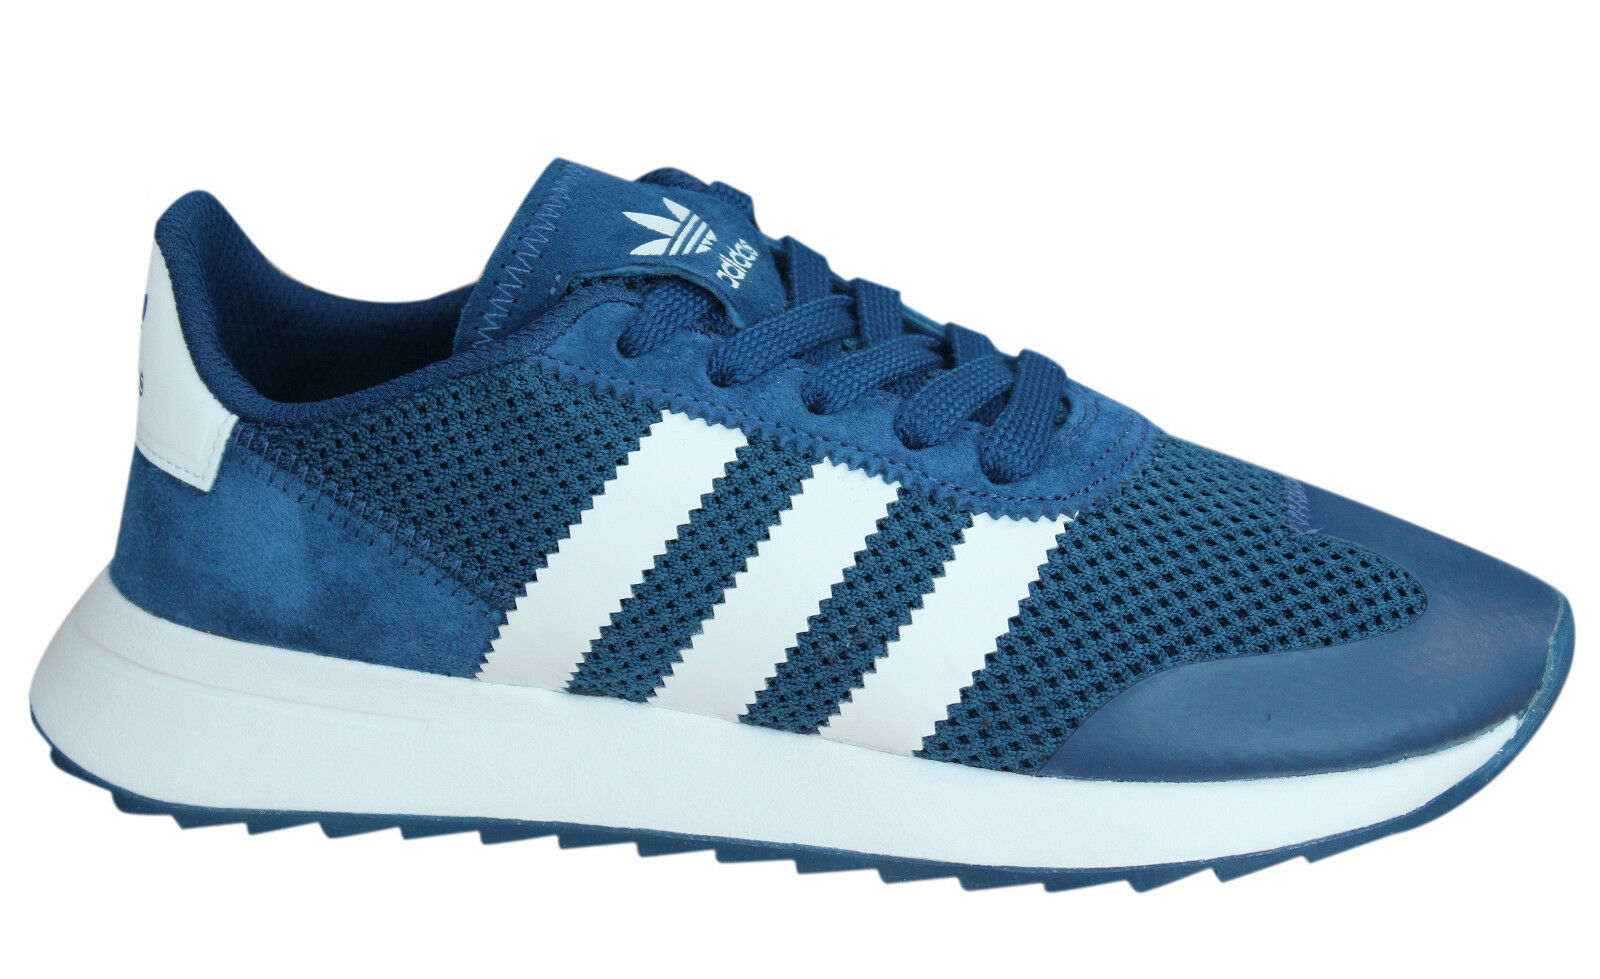 Descuento por tiempo limitado Adidas Originals Flashrunner Womens Trainers Lace Up Shoes Navy Blue BA7755 U42